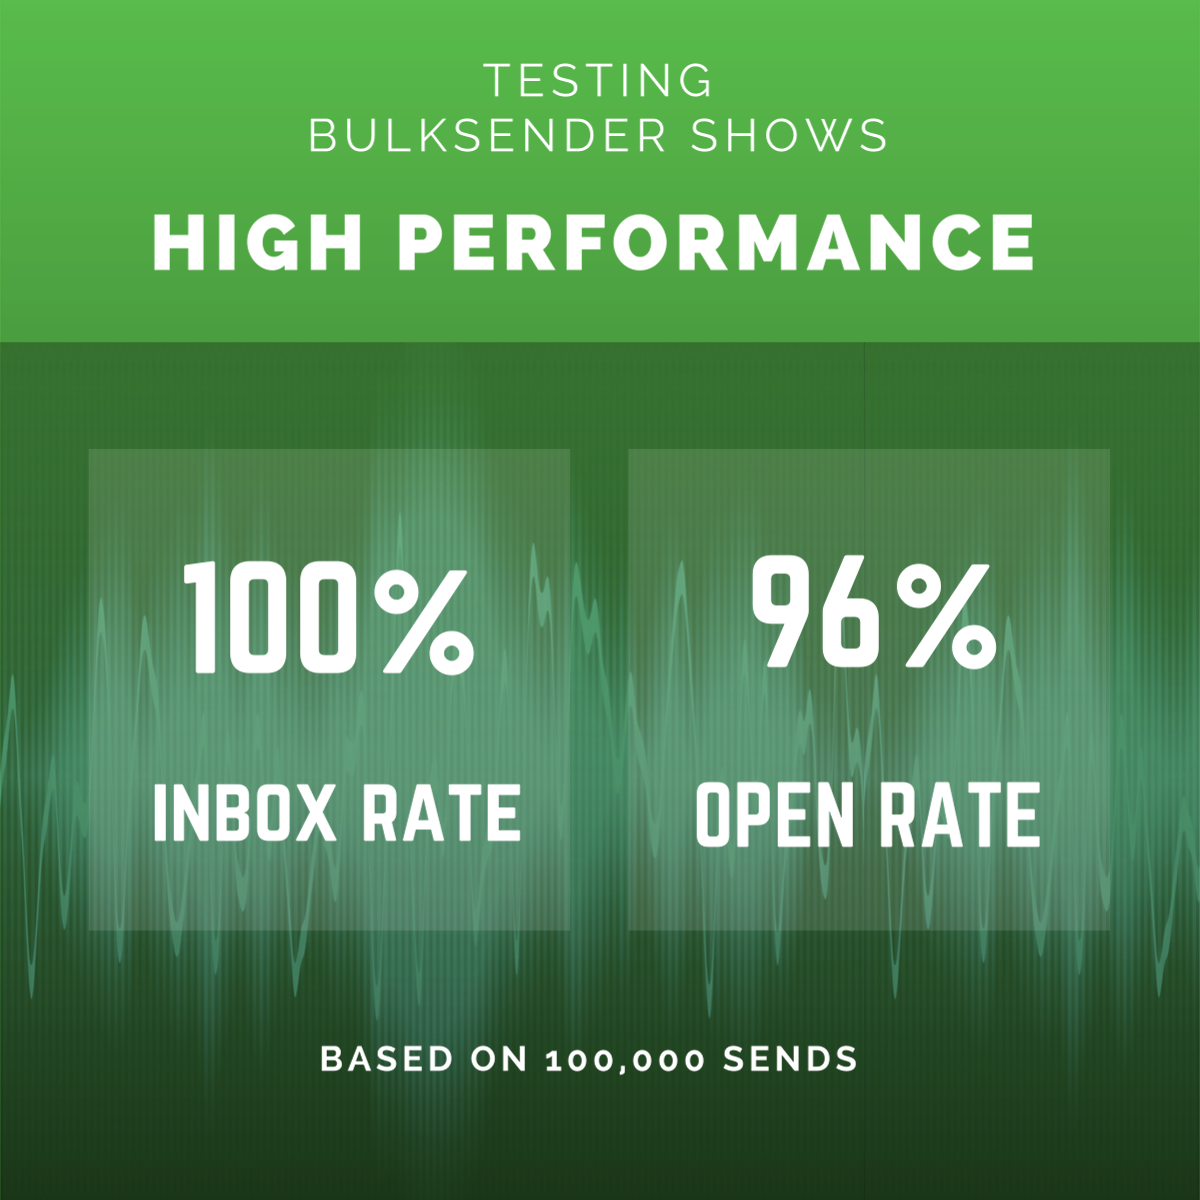 bulksender-testing-shows-high-performance